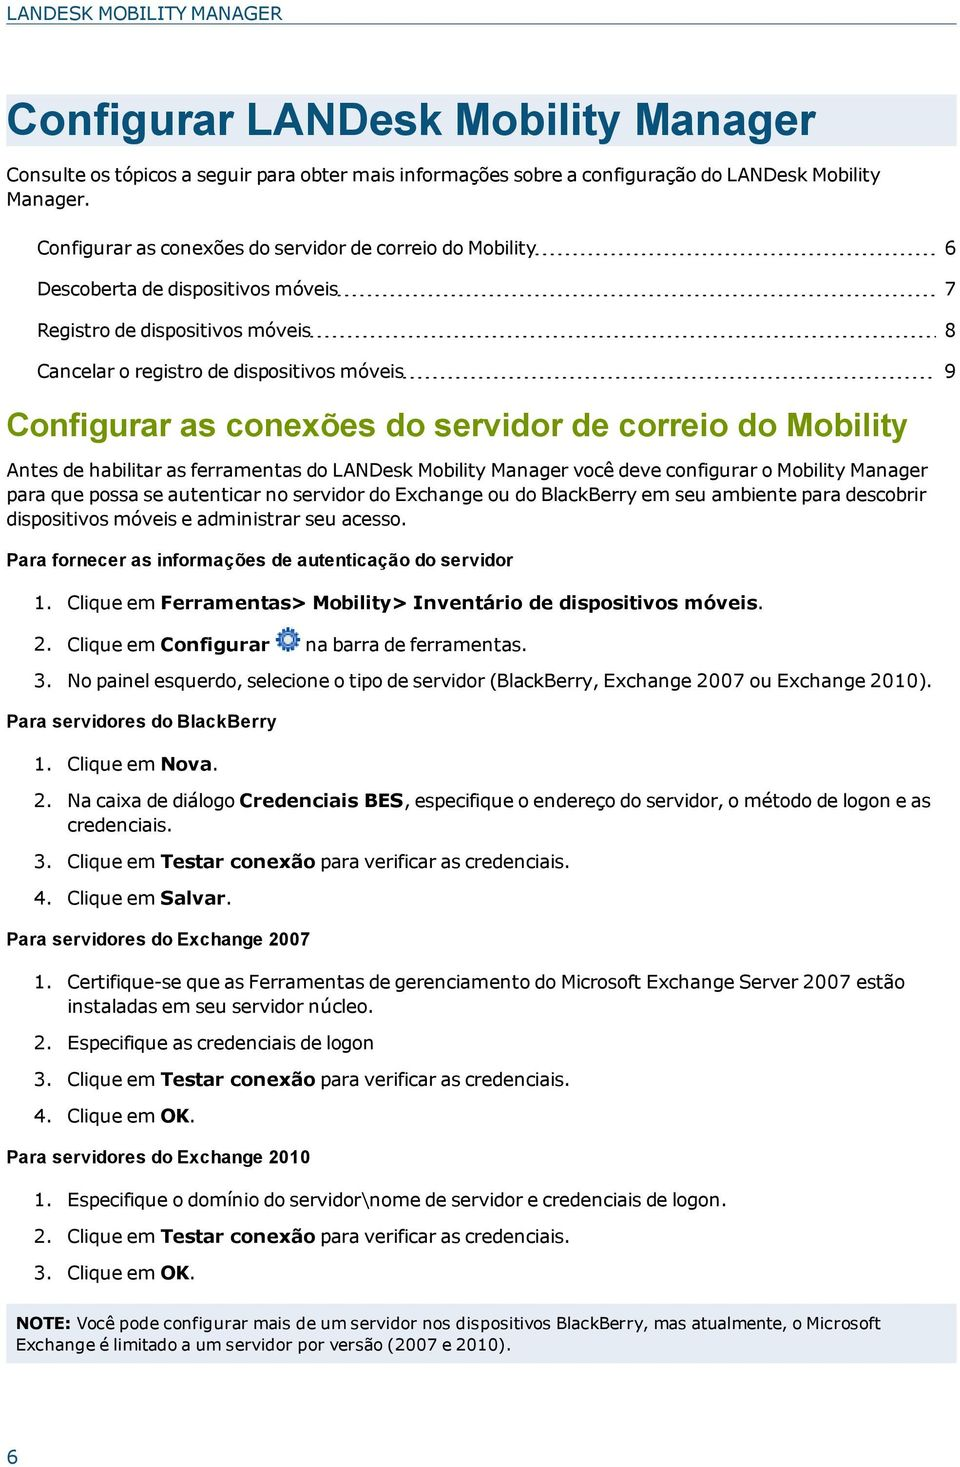 do servidor de correio do Mobility Antes de habilitar as ferramentas do LANDesk Mobility Manager você deve configurar o Mobility Manager para que possa se autenticar no servidor do Exchange ou do